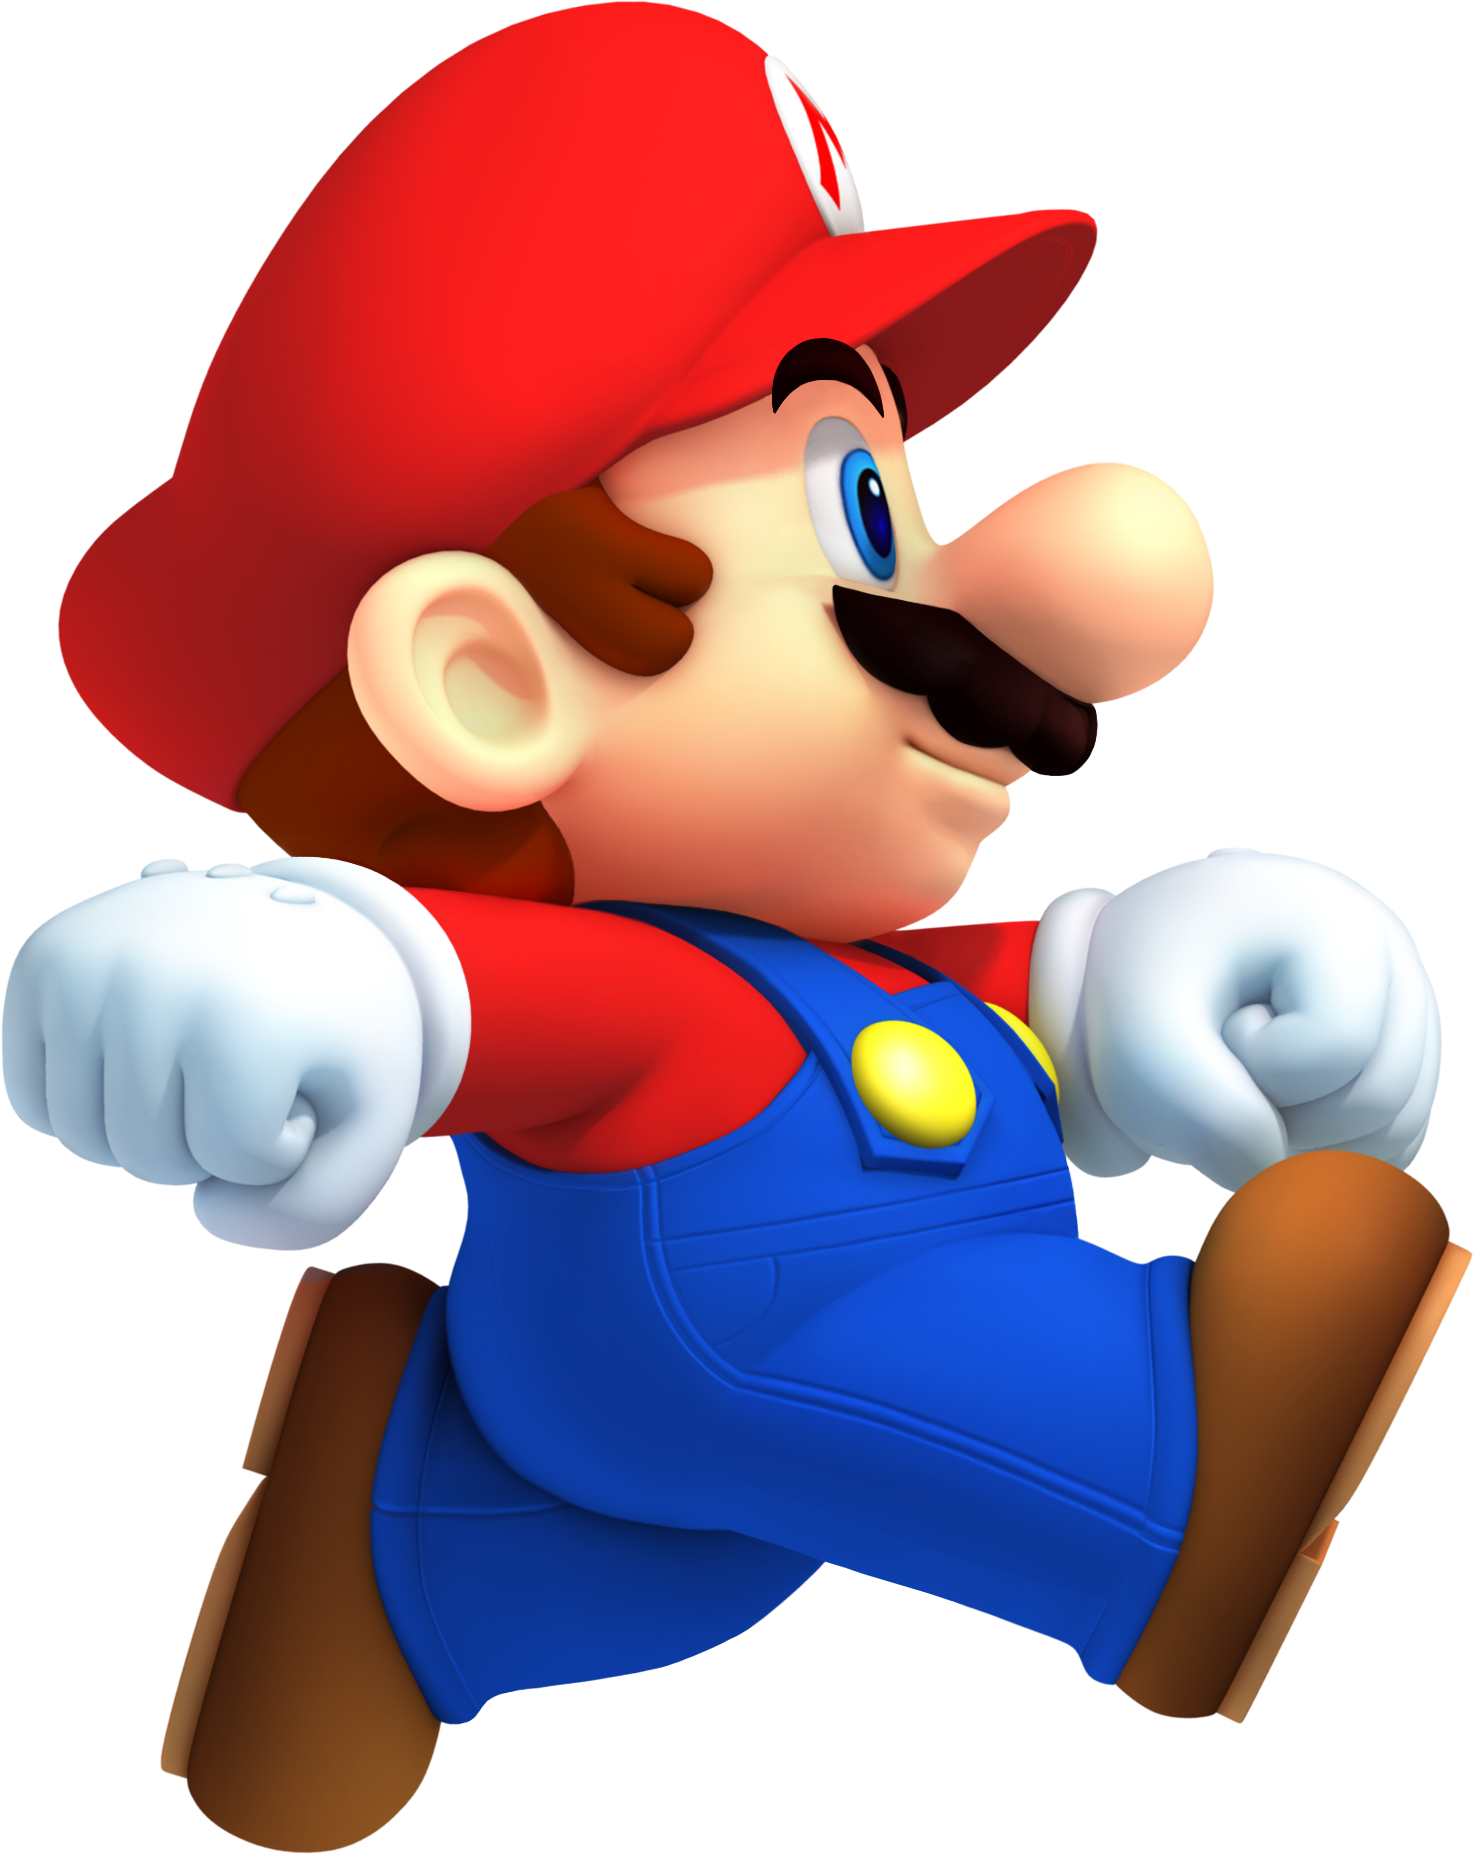 Mario Transparent Background PNG Image